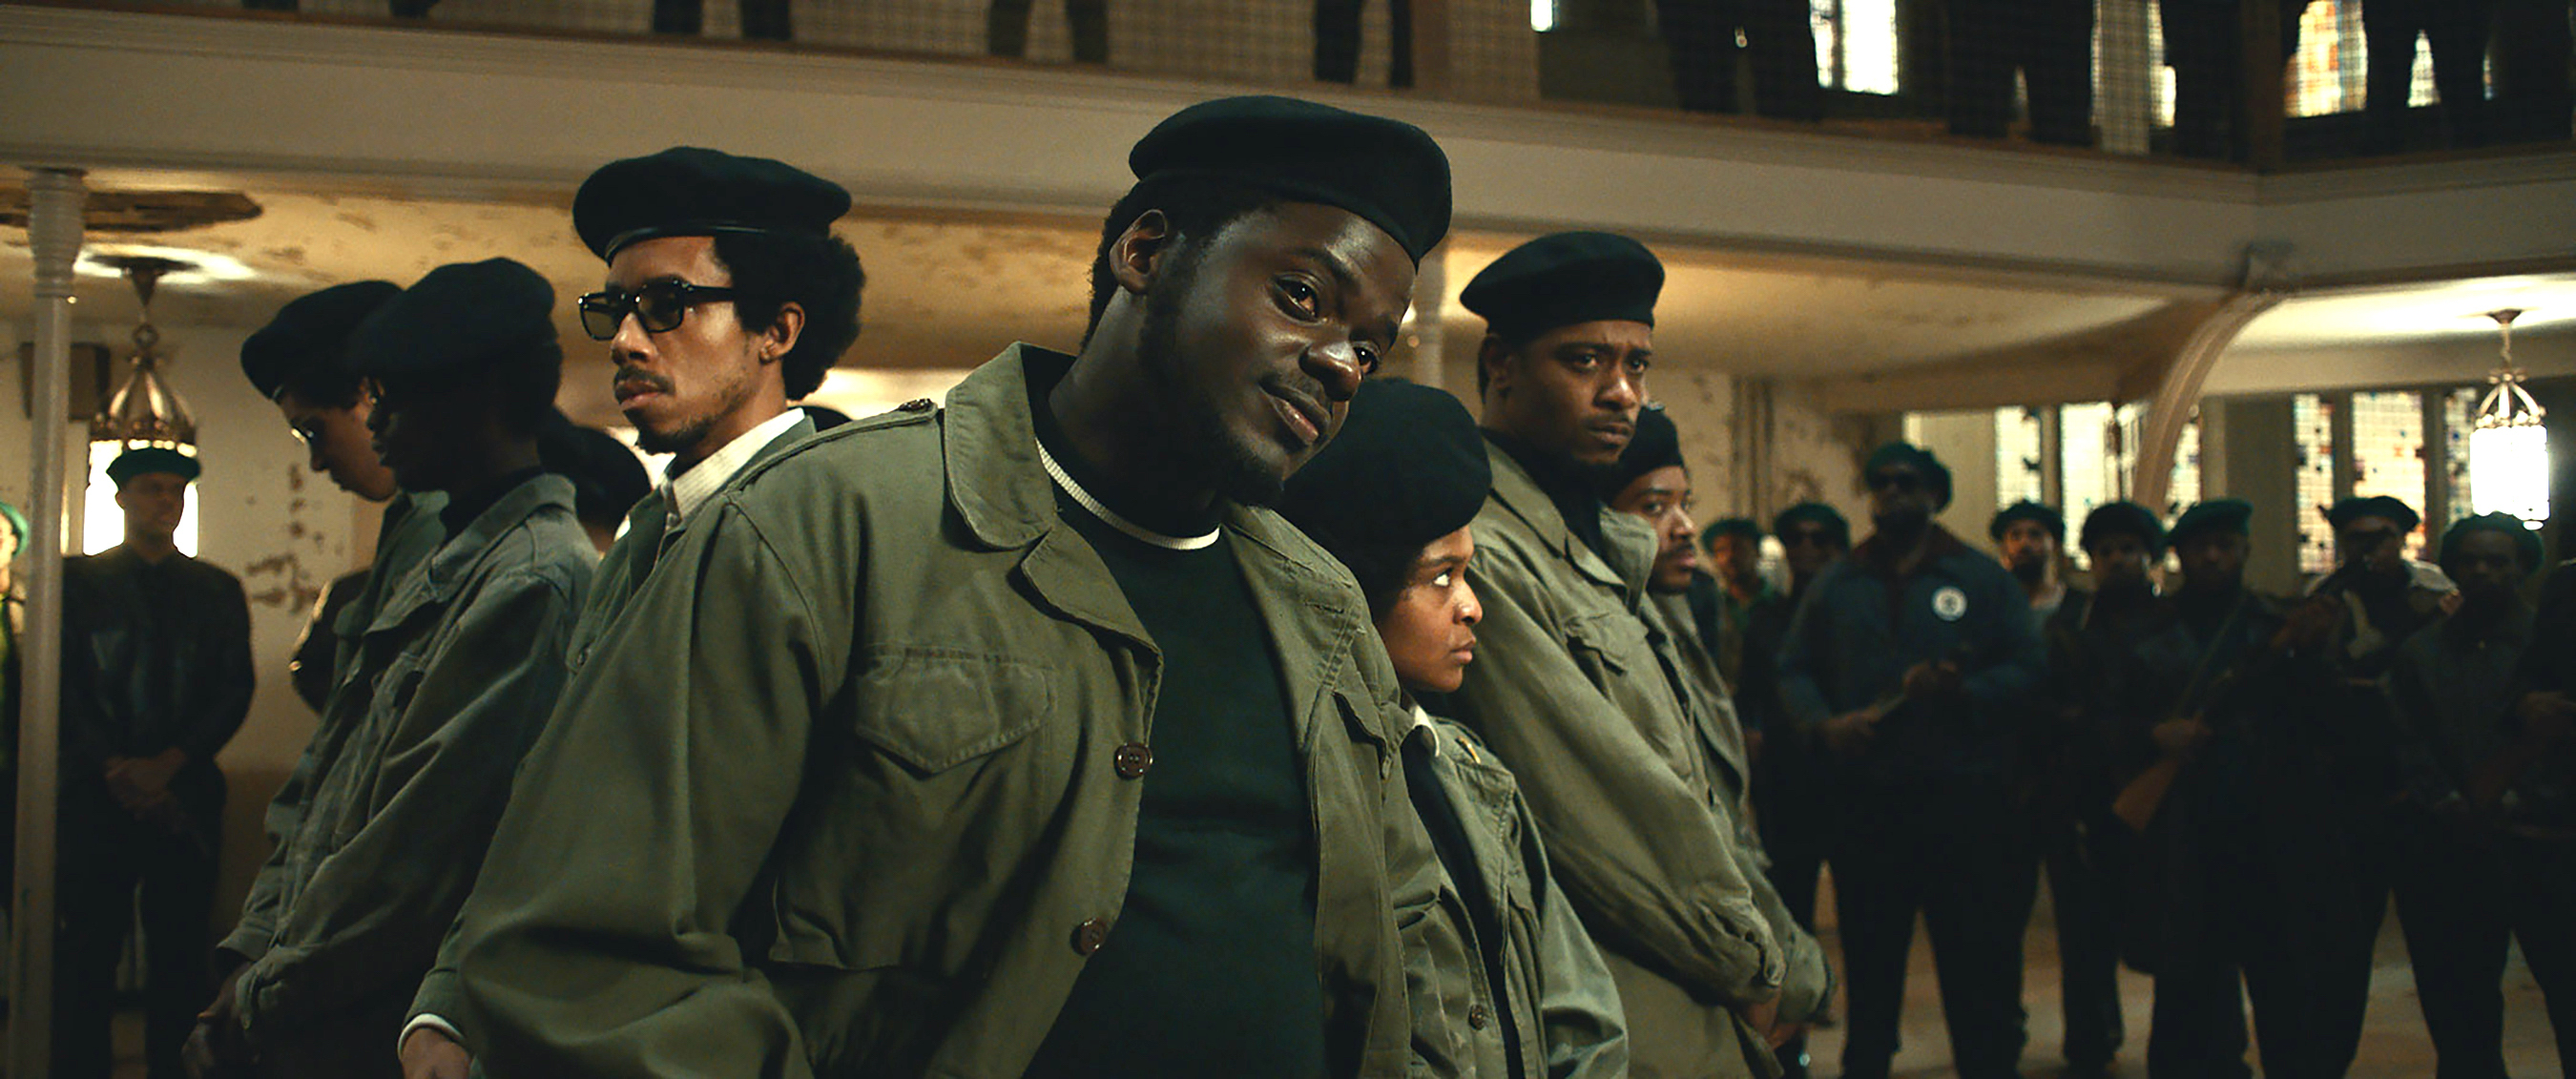 Daniel Kaluuya in front of his posse in Judas and the Black Messiah